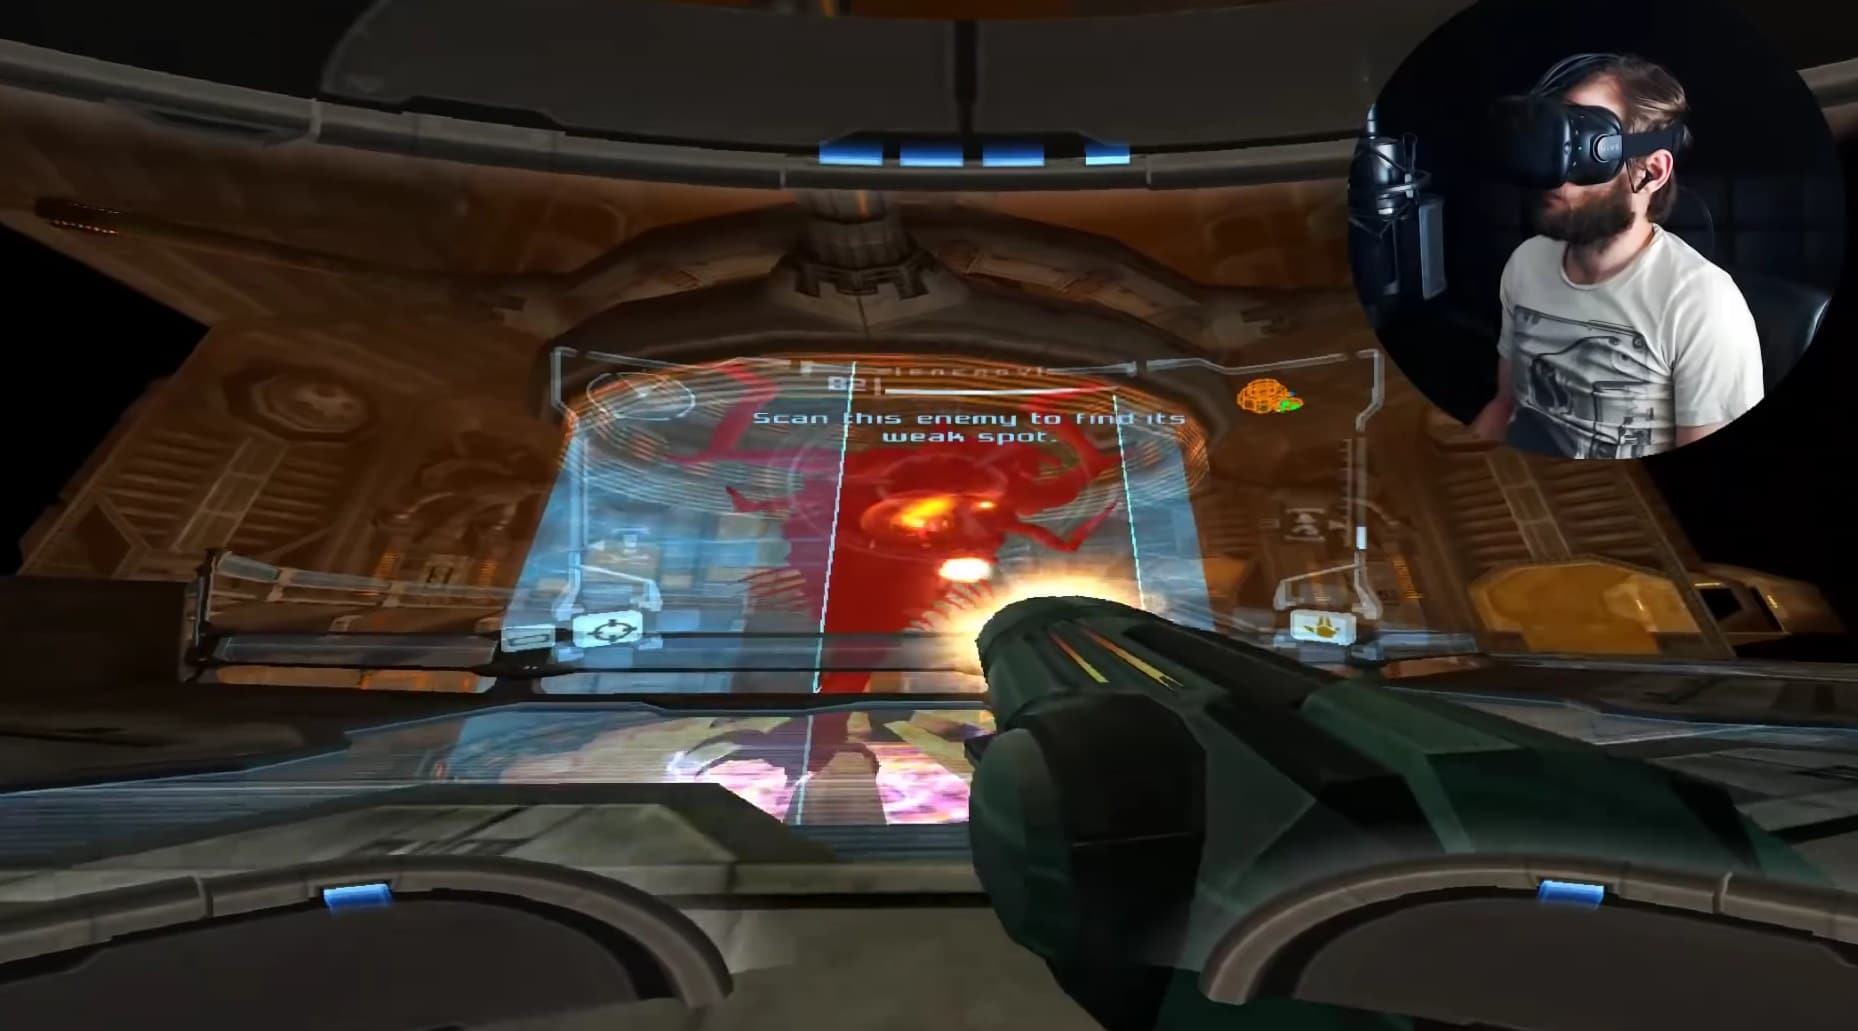 Metroid Prime mit der VR-Brille. (Foto: Screenshot)